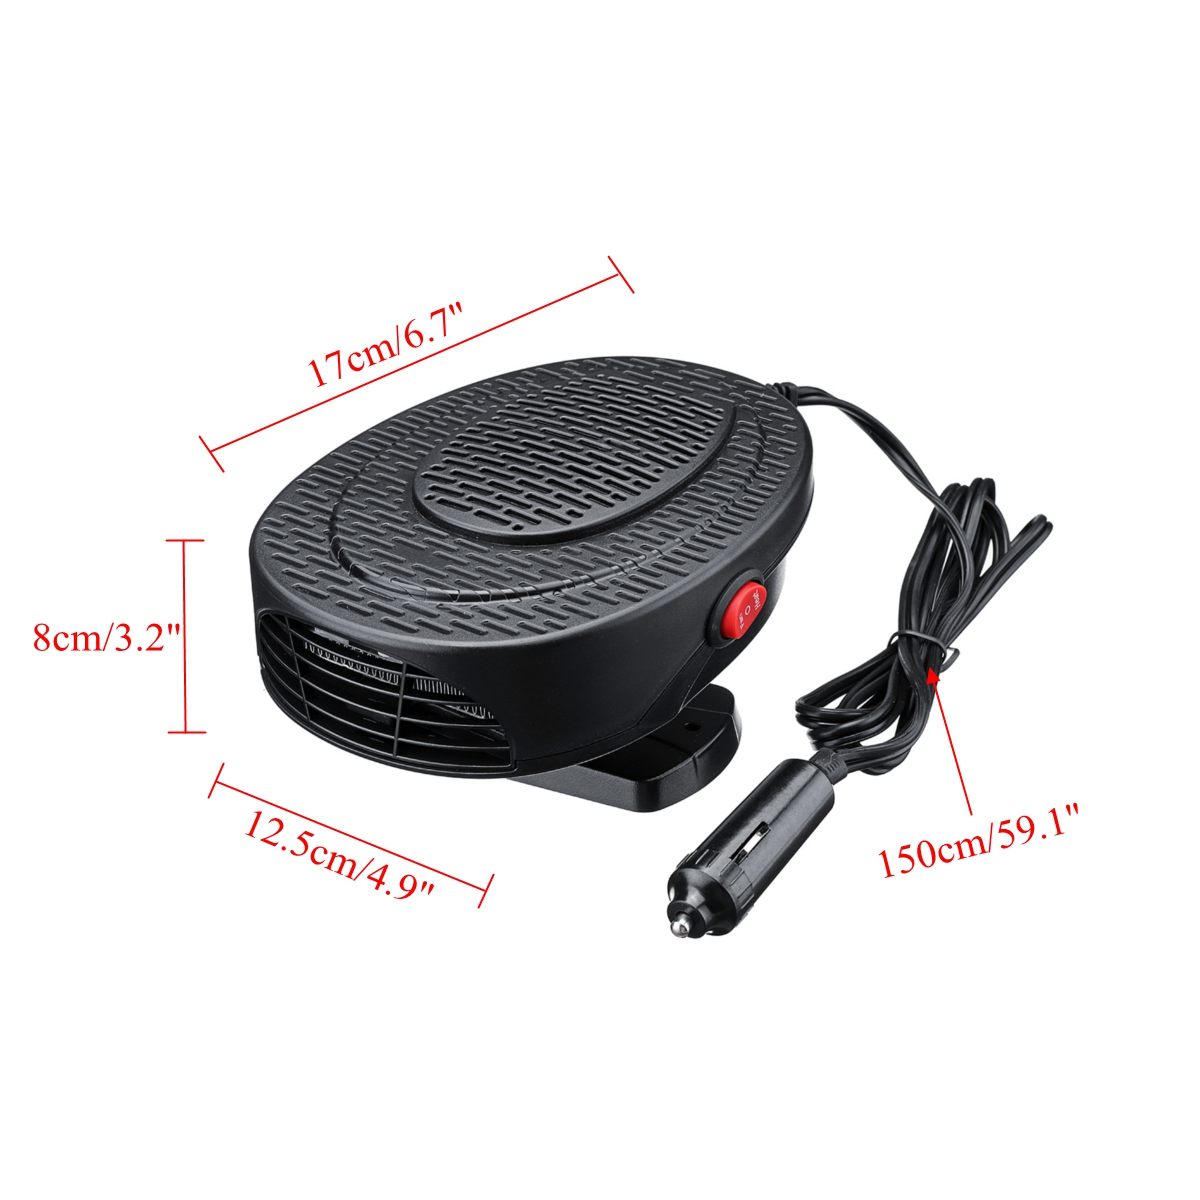 Yuauy Black Vehicle Car Heater and Cooling 2 in1 Fast Heating Defrosts Defogger 12V 150W Auto Ceramic Heater Fan 3-Outlet Plug in Cig Lighter Demister Fashion